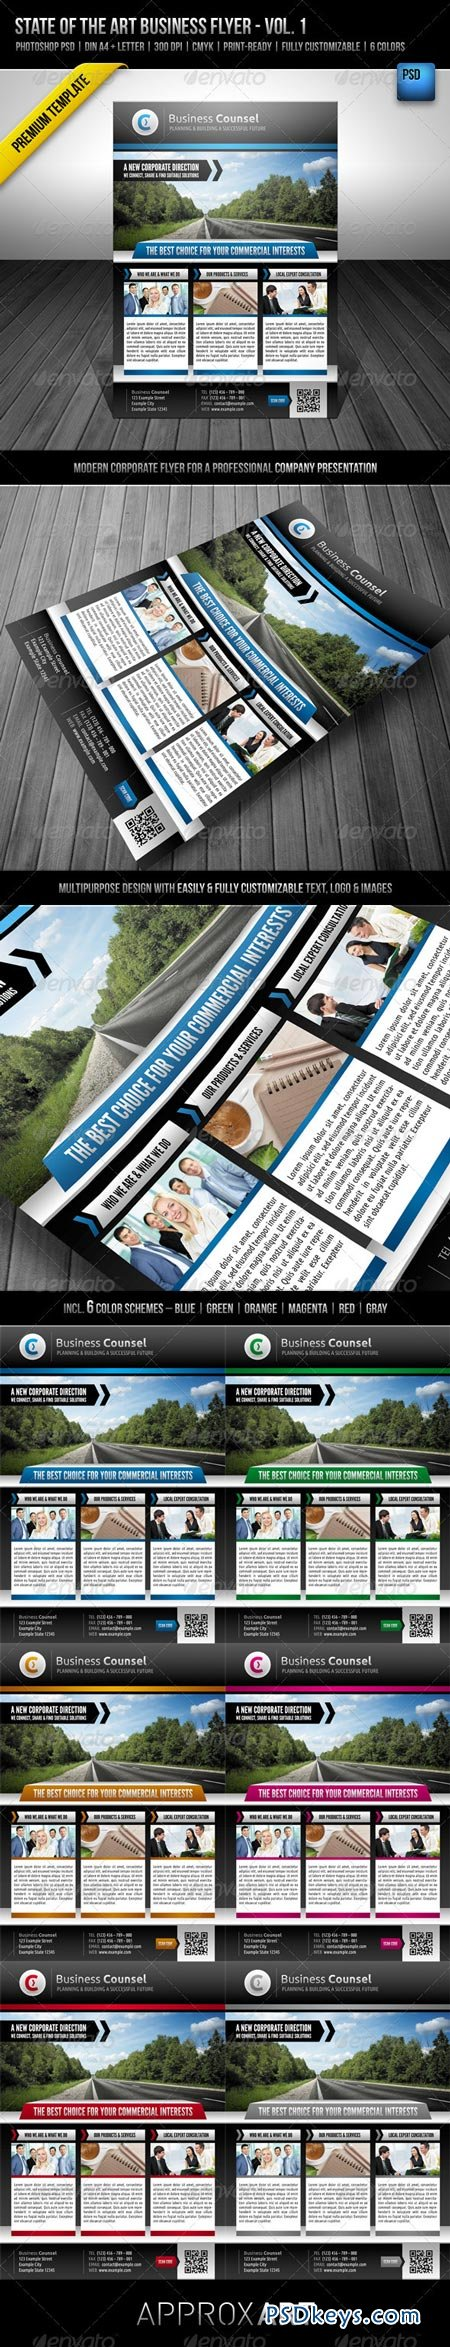 State of the Art Business Flyer - Vol. 1 2521298